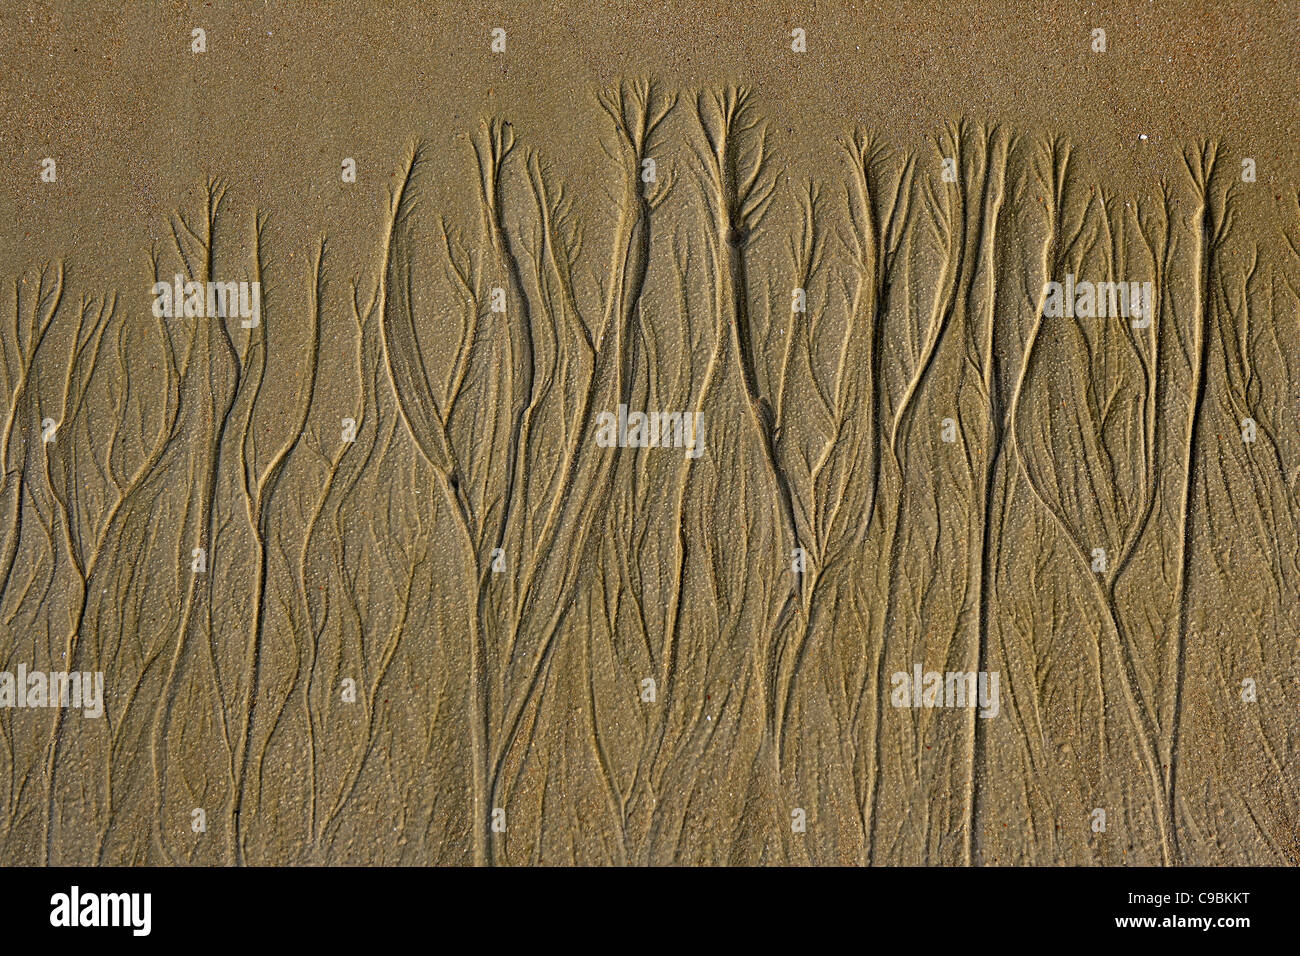 Africa, Guinea-Bissau, Tide marks on the beach - Stock Image